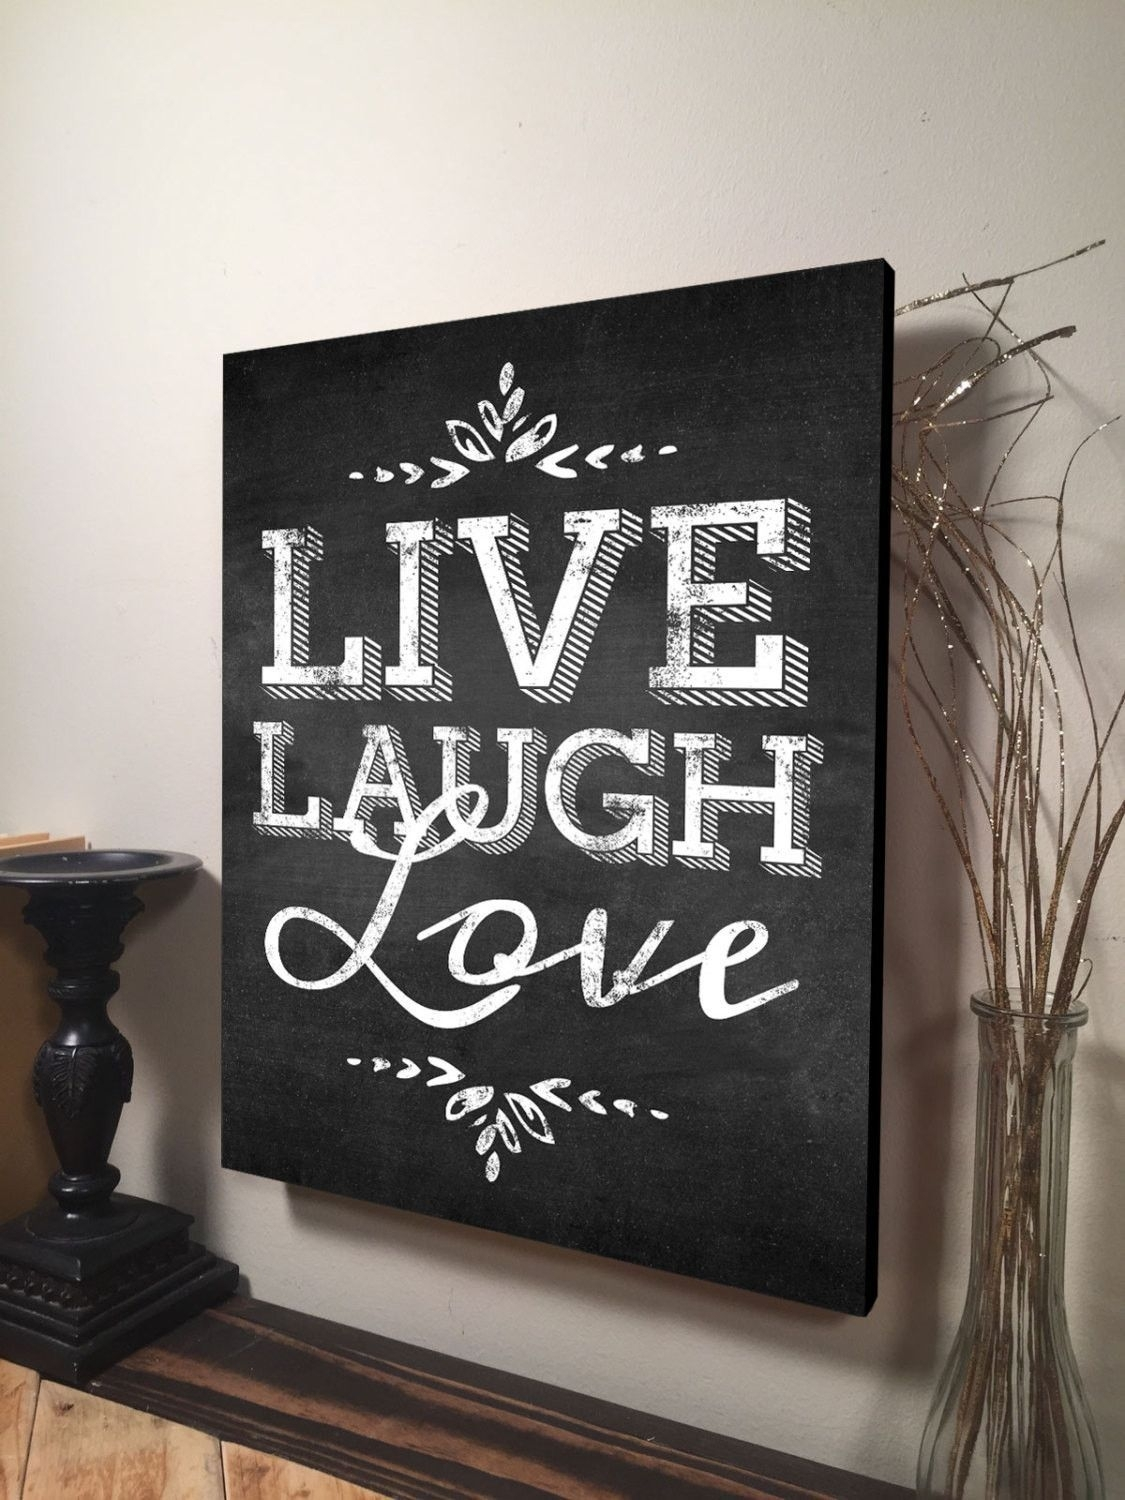 Live Laugh Love Wall Art Inspirational Quote Home Decor Canvas Art With Regard To Most Recent Canvas Wall Art Family Quotes (View 5 of 15)